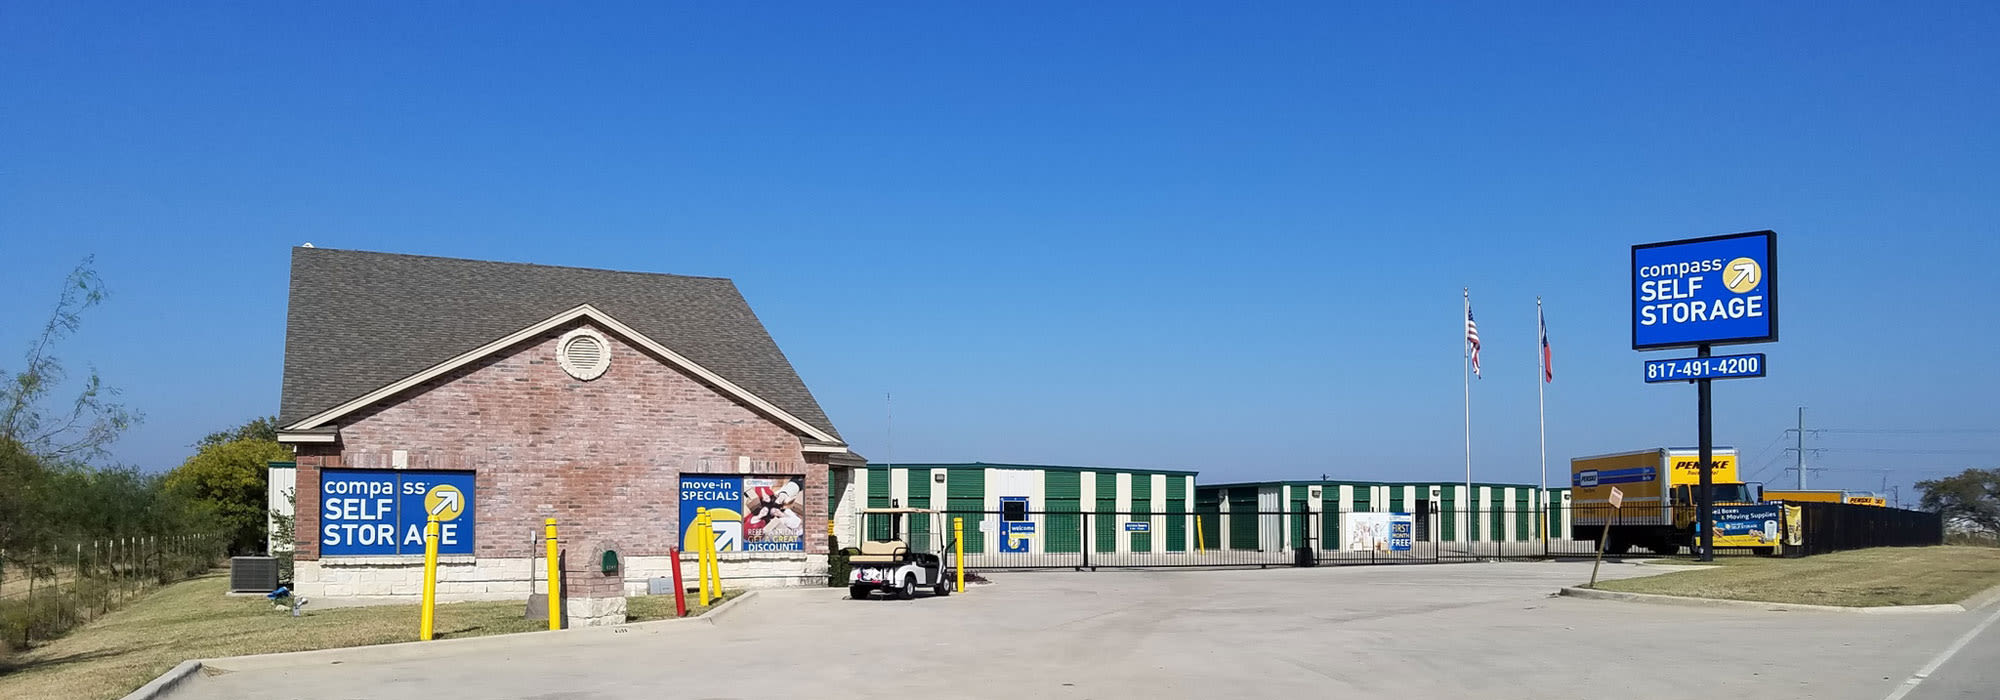 Self storage in Ft. Worth TX